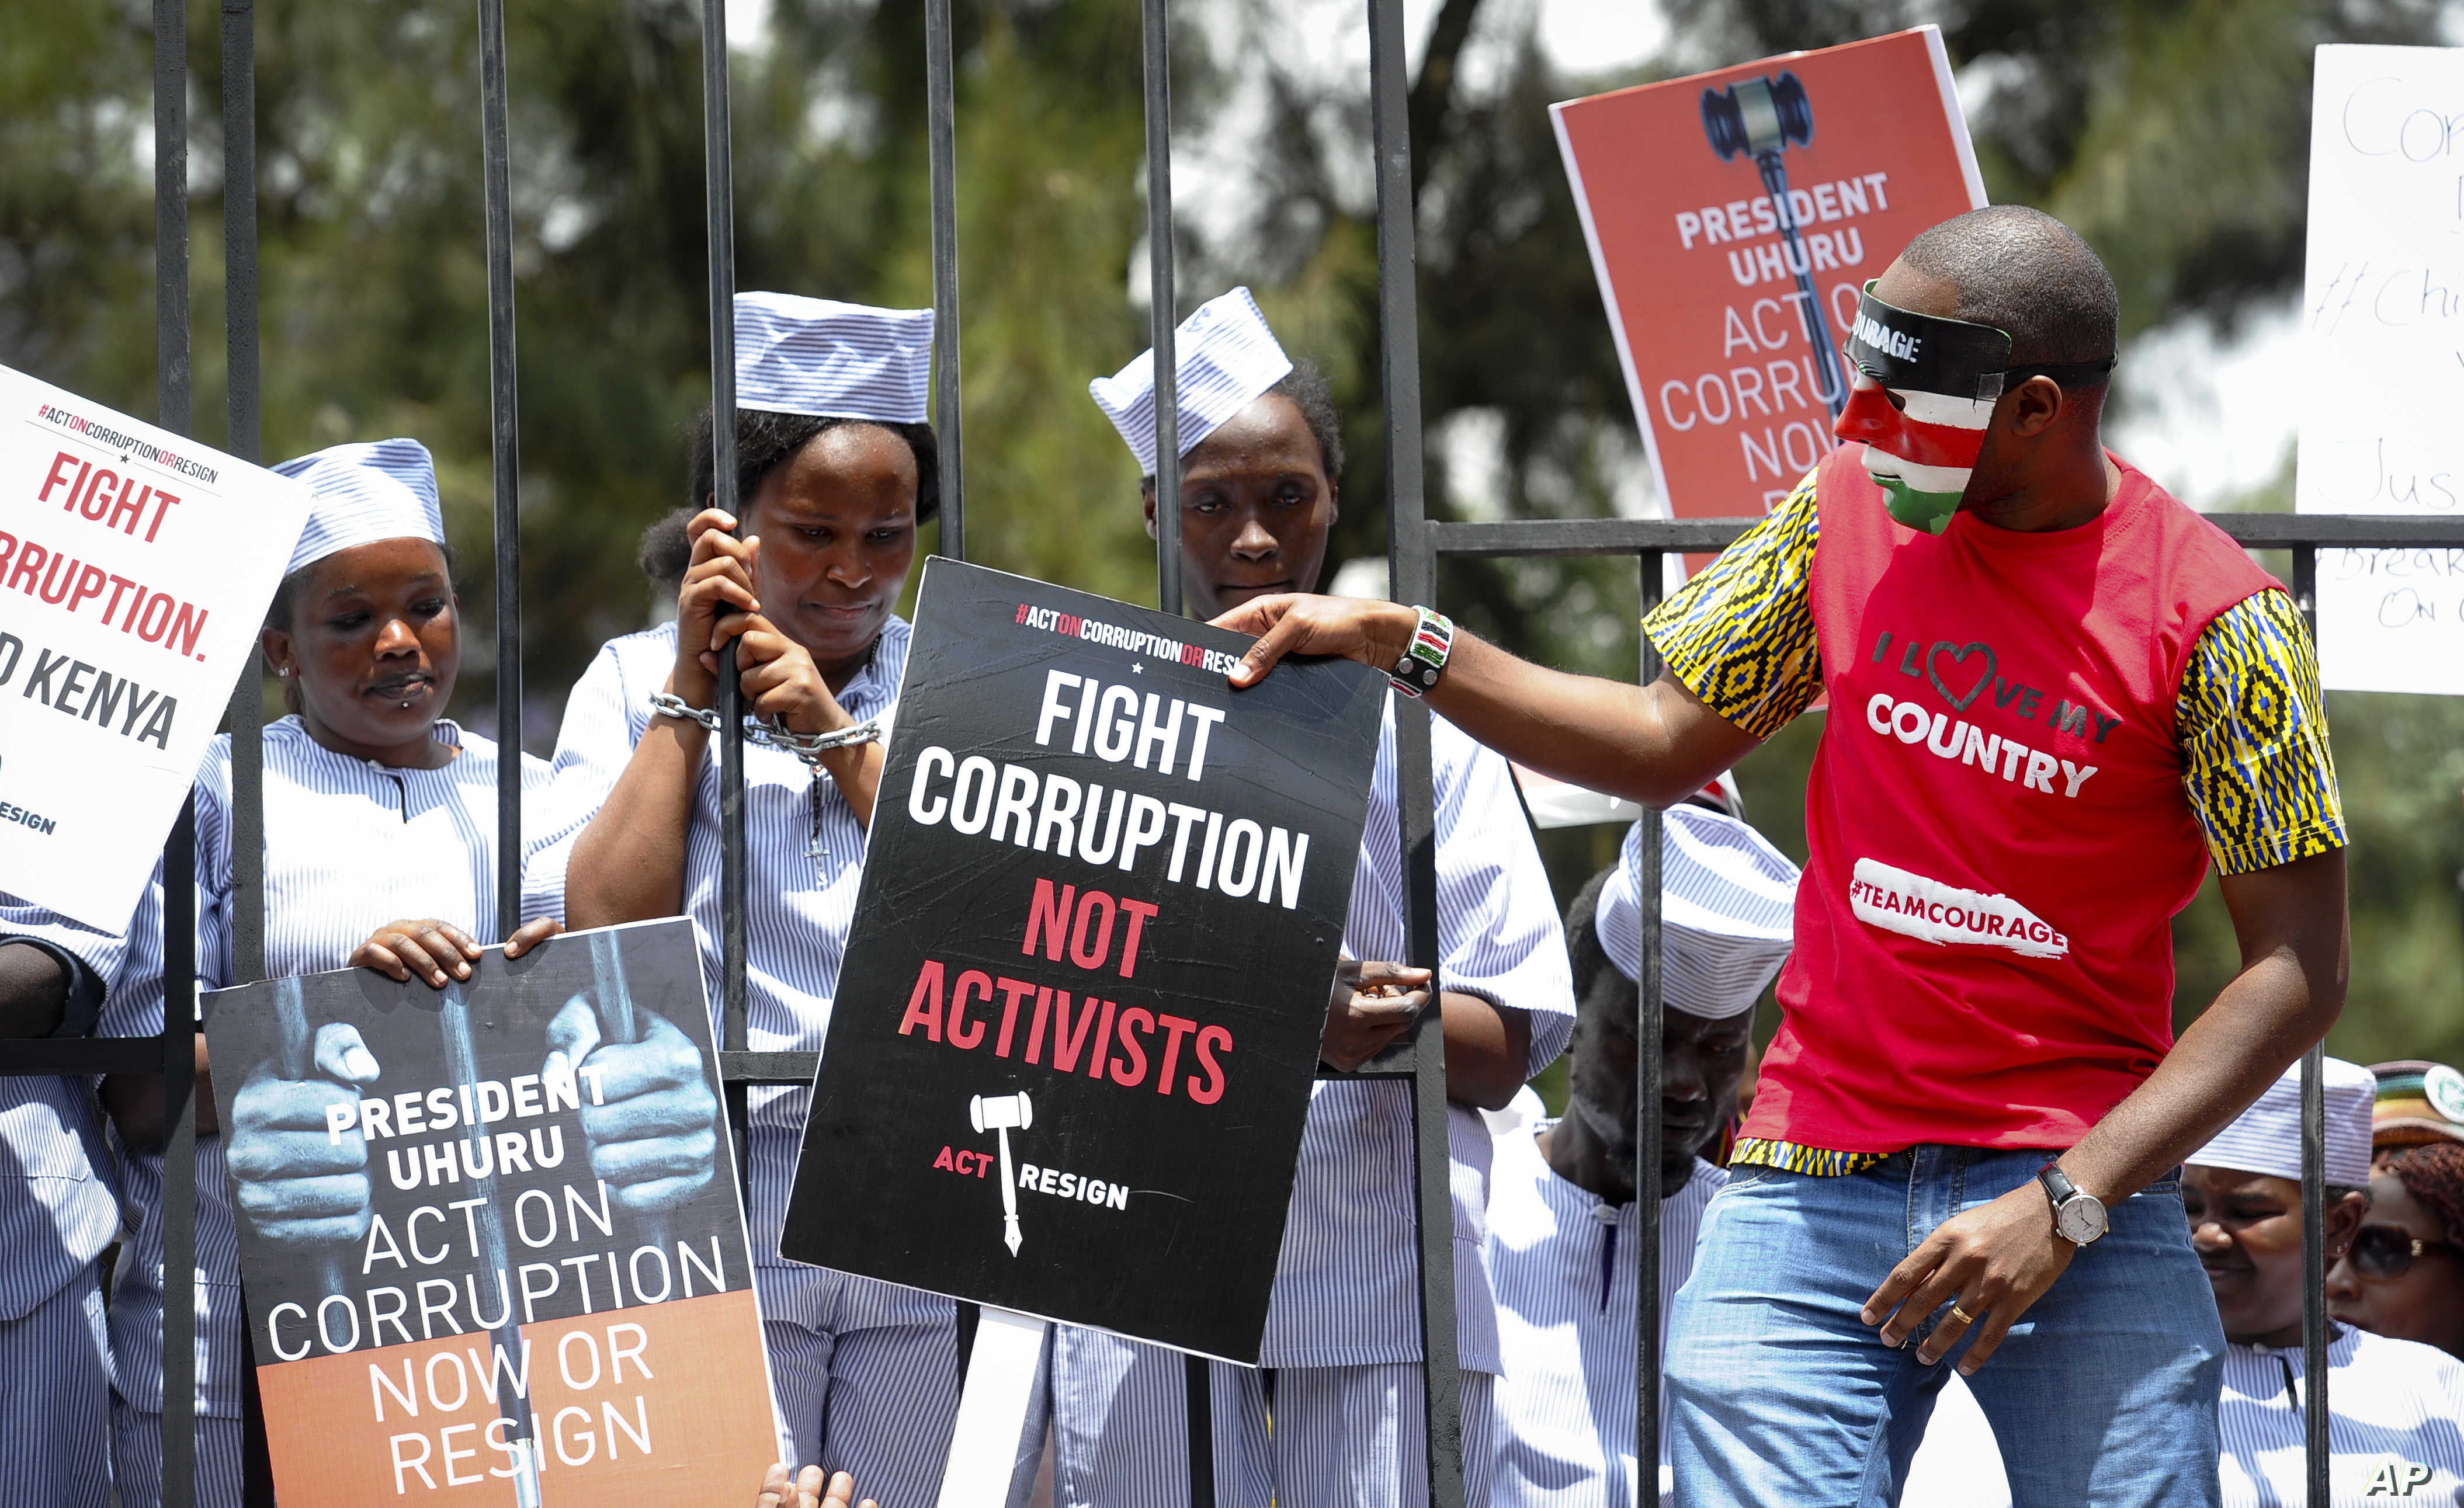 https://www.voanews.com/africa/kenyan-police-use-tear-gas-disperse-rally-against-graft